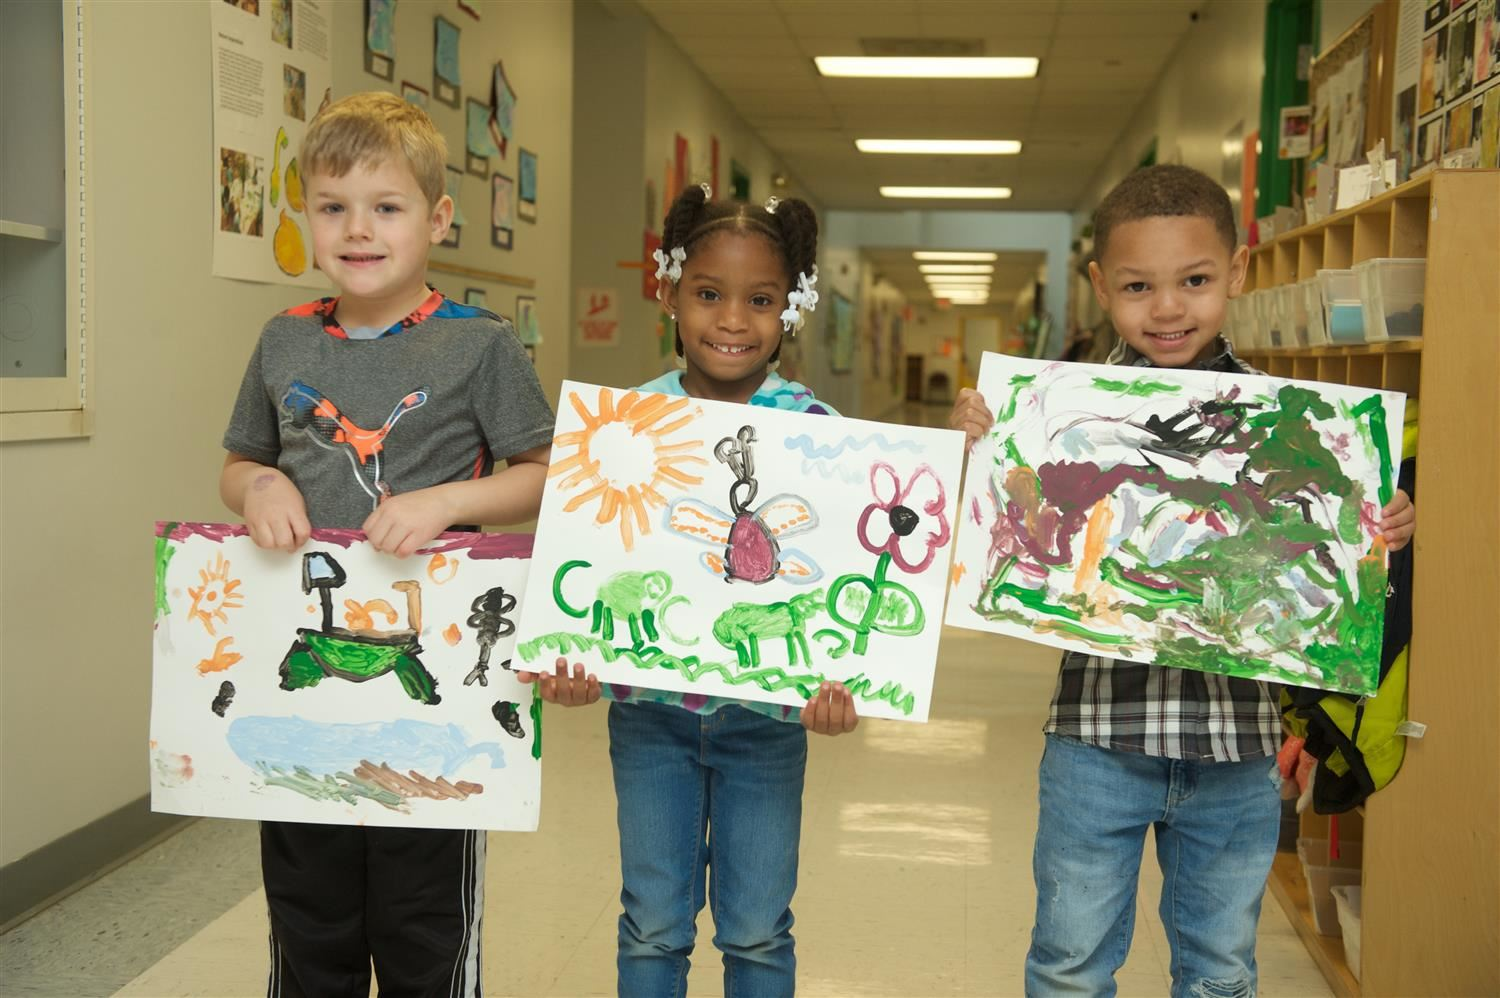 students showing their artwork